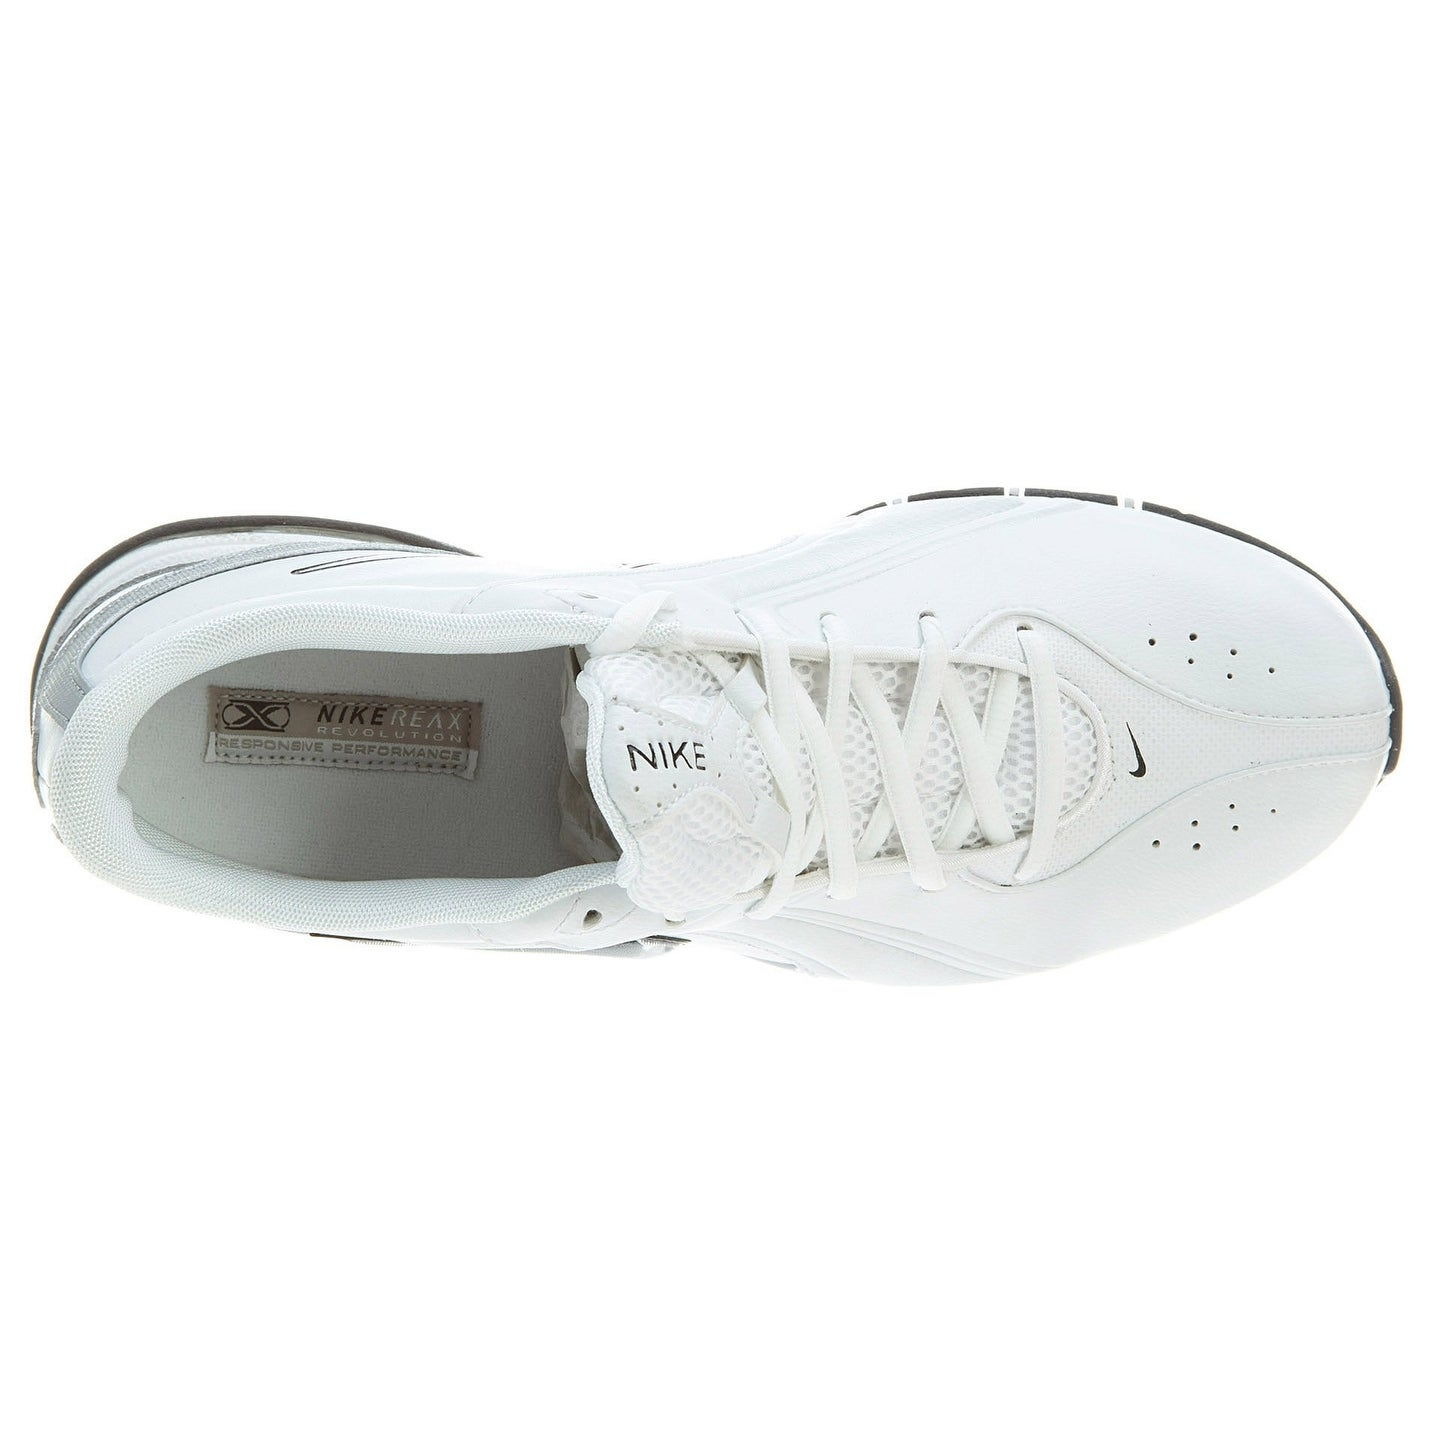 df08c2642d457b Shop New Nike Men s Reax TR III SL Cross Trainer White Silver - white   metallic  silver - Ships To Canada - - 17755607